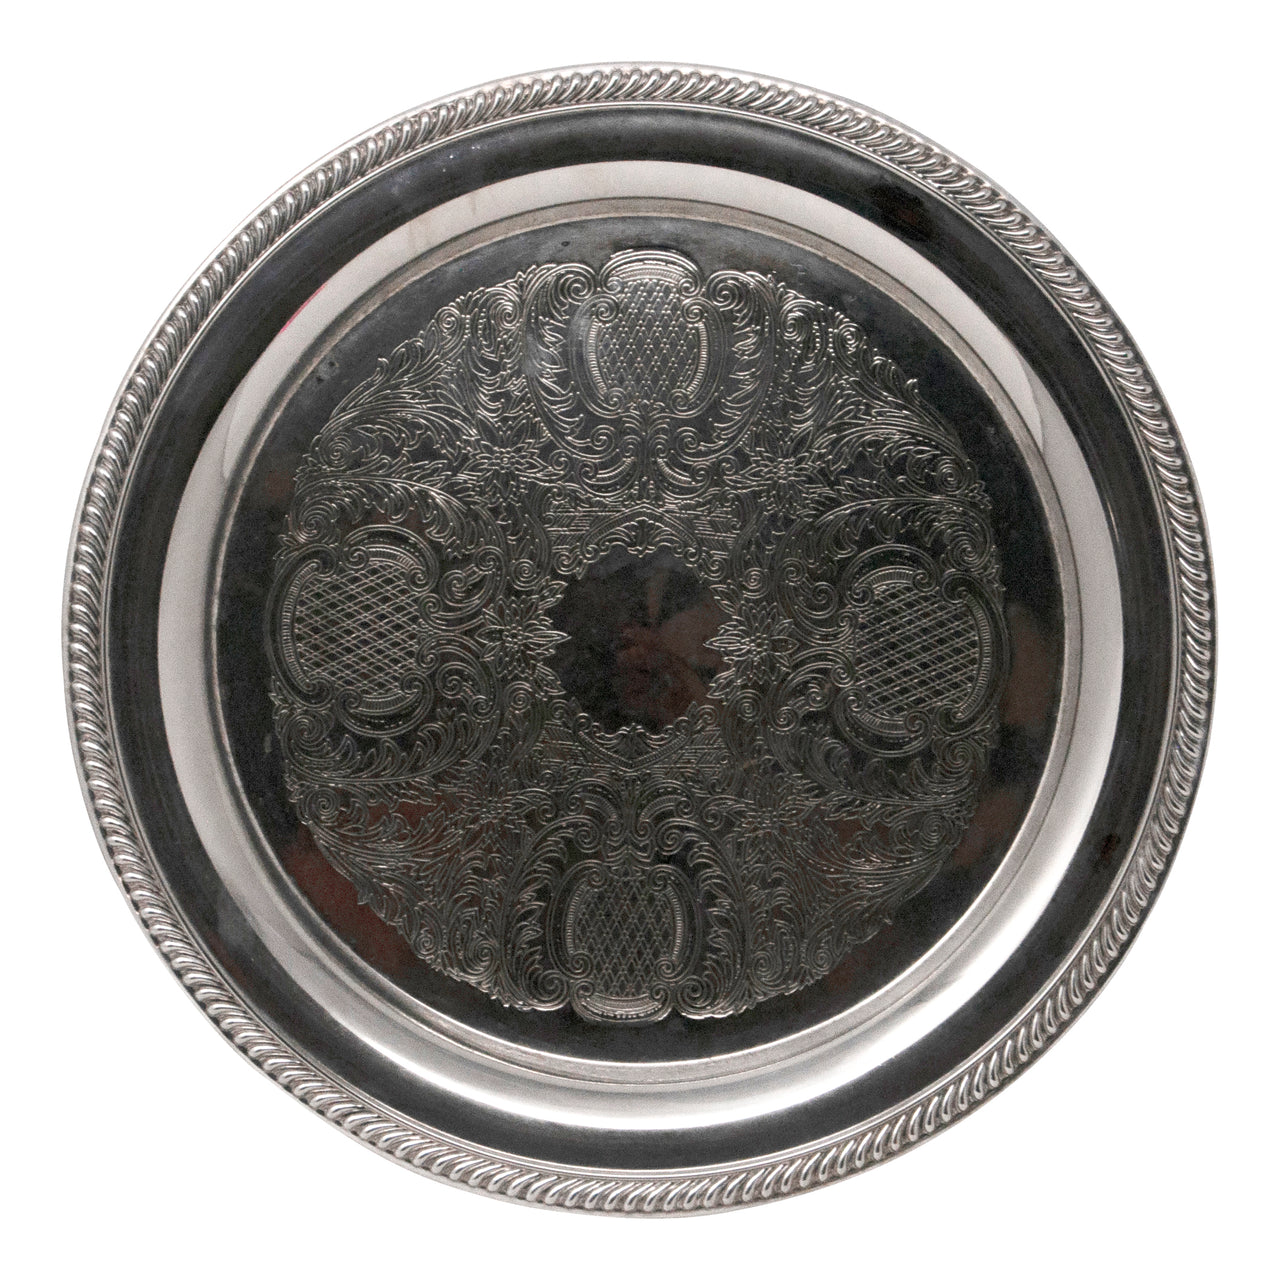 Vintage Engraved Flowers & Scrolls Silver Plate Tray | The Hour Shop